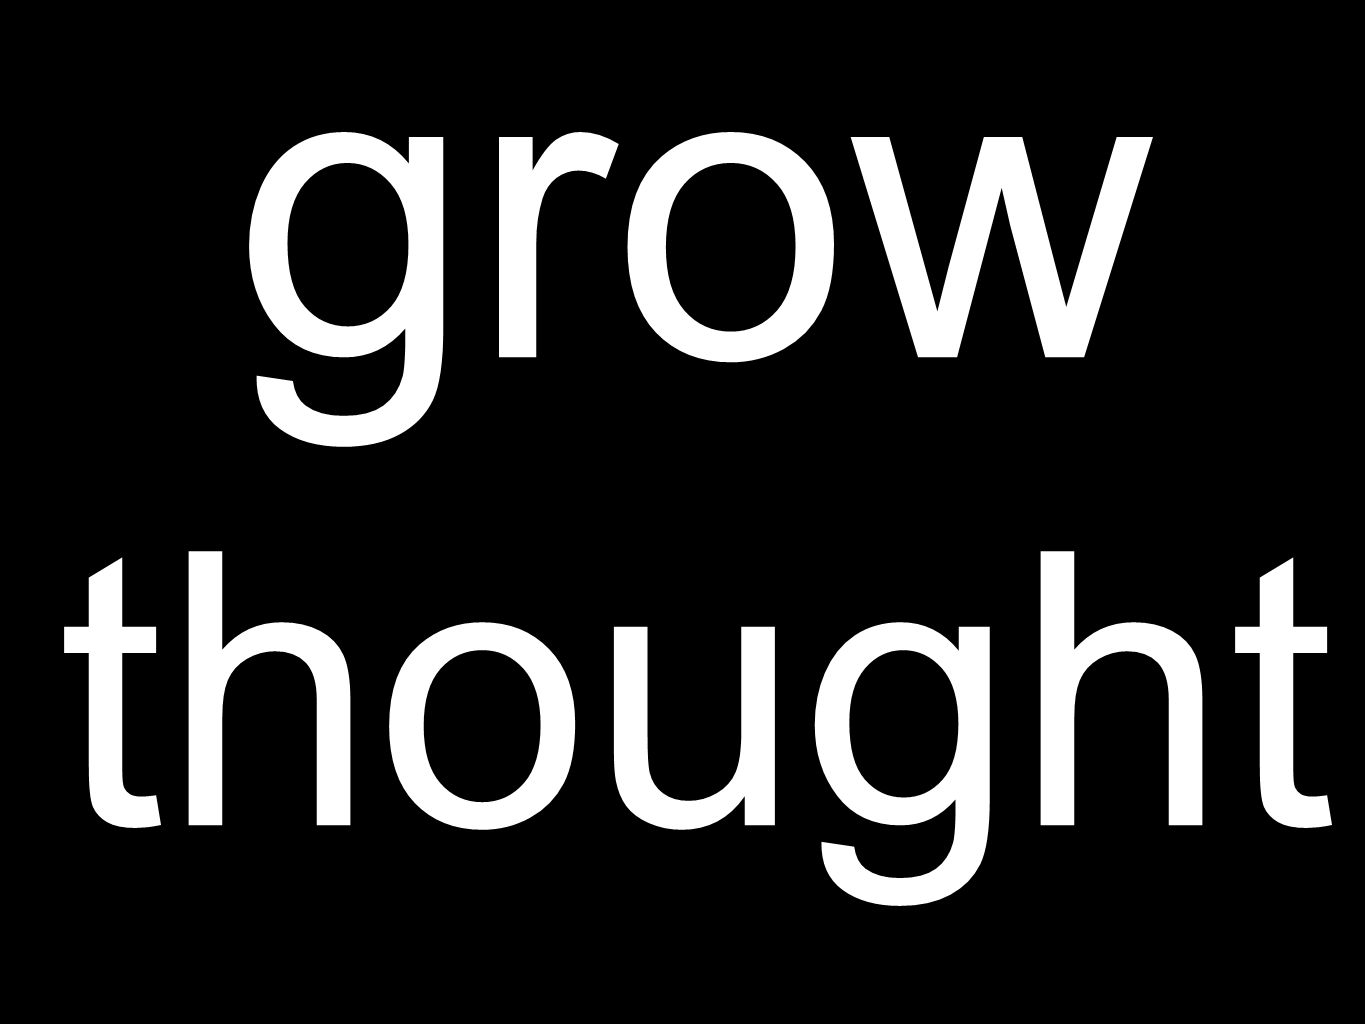 grow thought